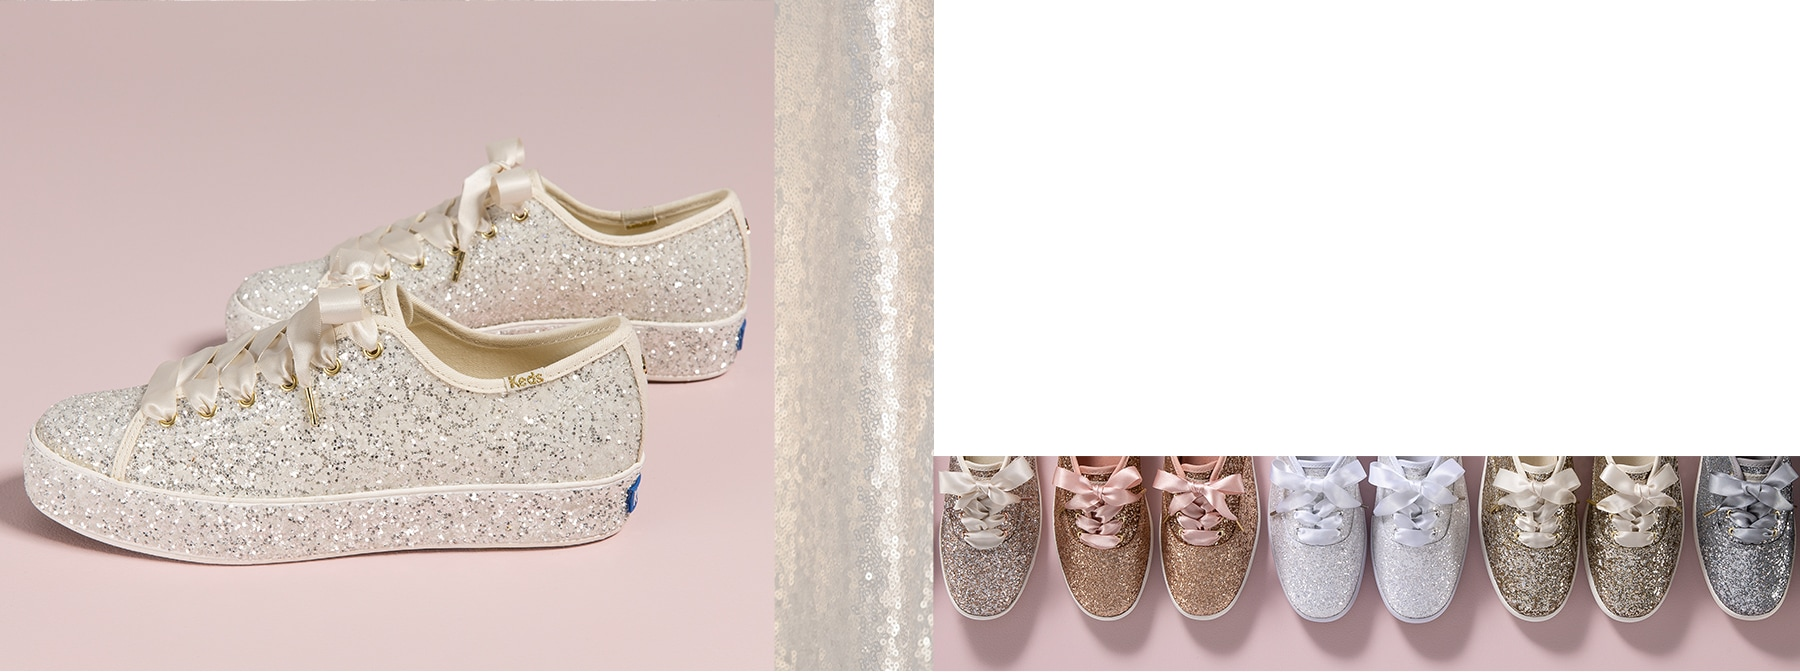 A pair of Keds glitter sneakers.